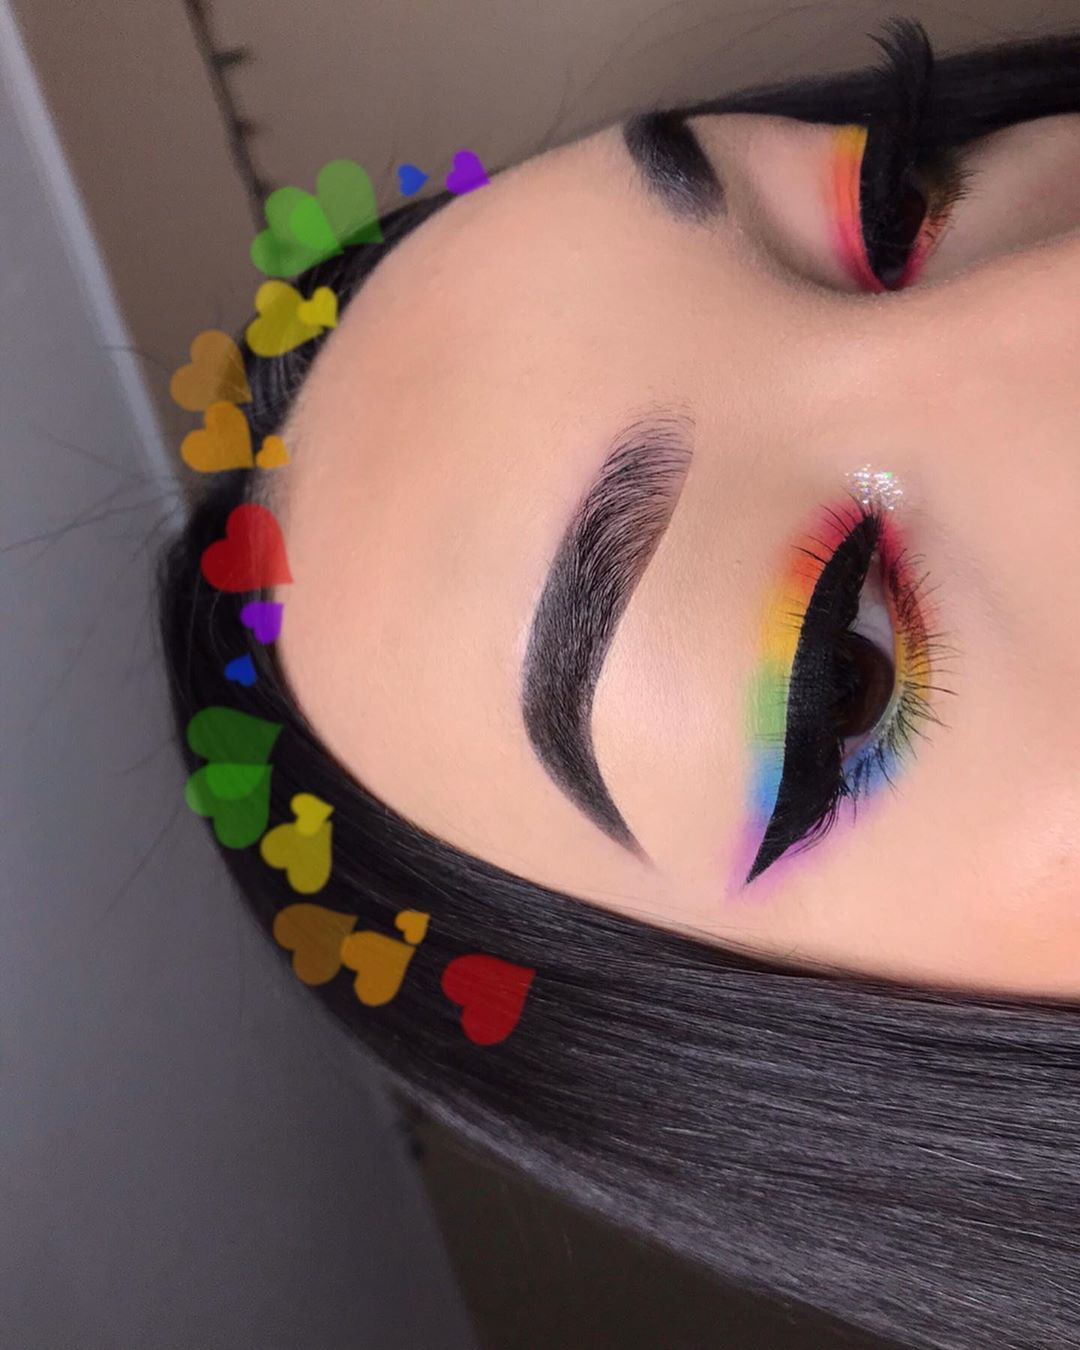 "Photo of Chelsea Breanne Echeverria🐞 on Instagram: ""🏳️‍🌈PRIDE eyeliner🏳️‍🌈 ‼️👉🏼SWIPE TO SEE PICTORIAL👉🏼‼️ – Hi luvbugs🐞🧡In honor of pride month I wanted to do a rainbow look🏳️‍🌈I'm part of…"""